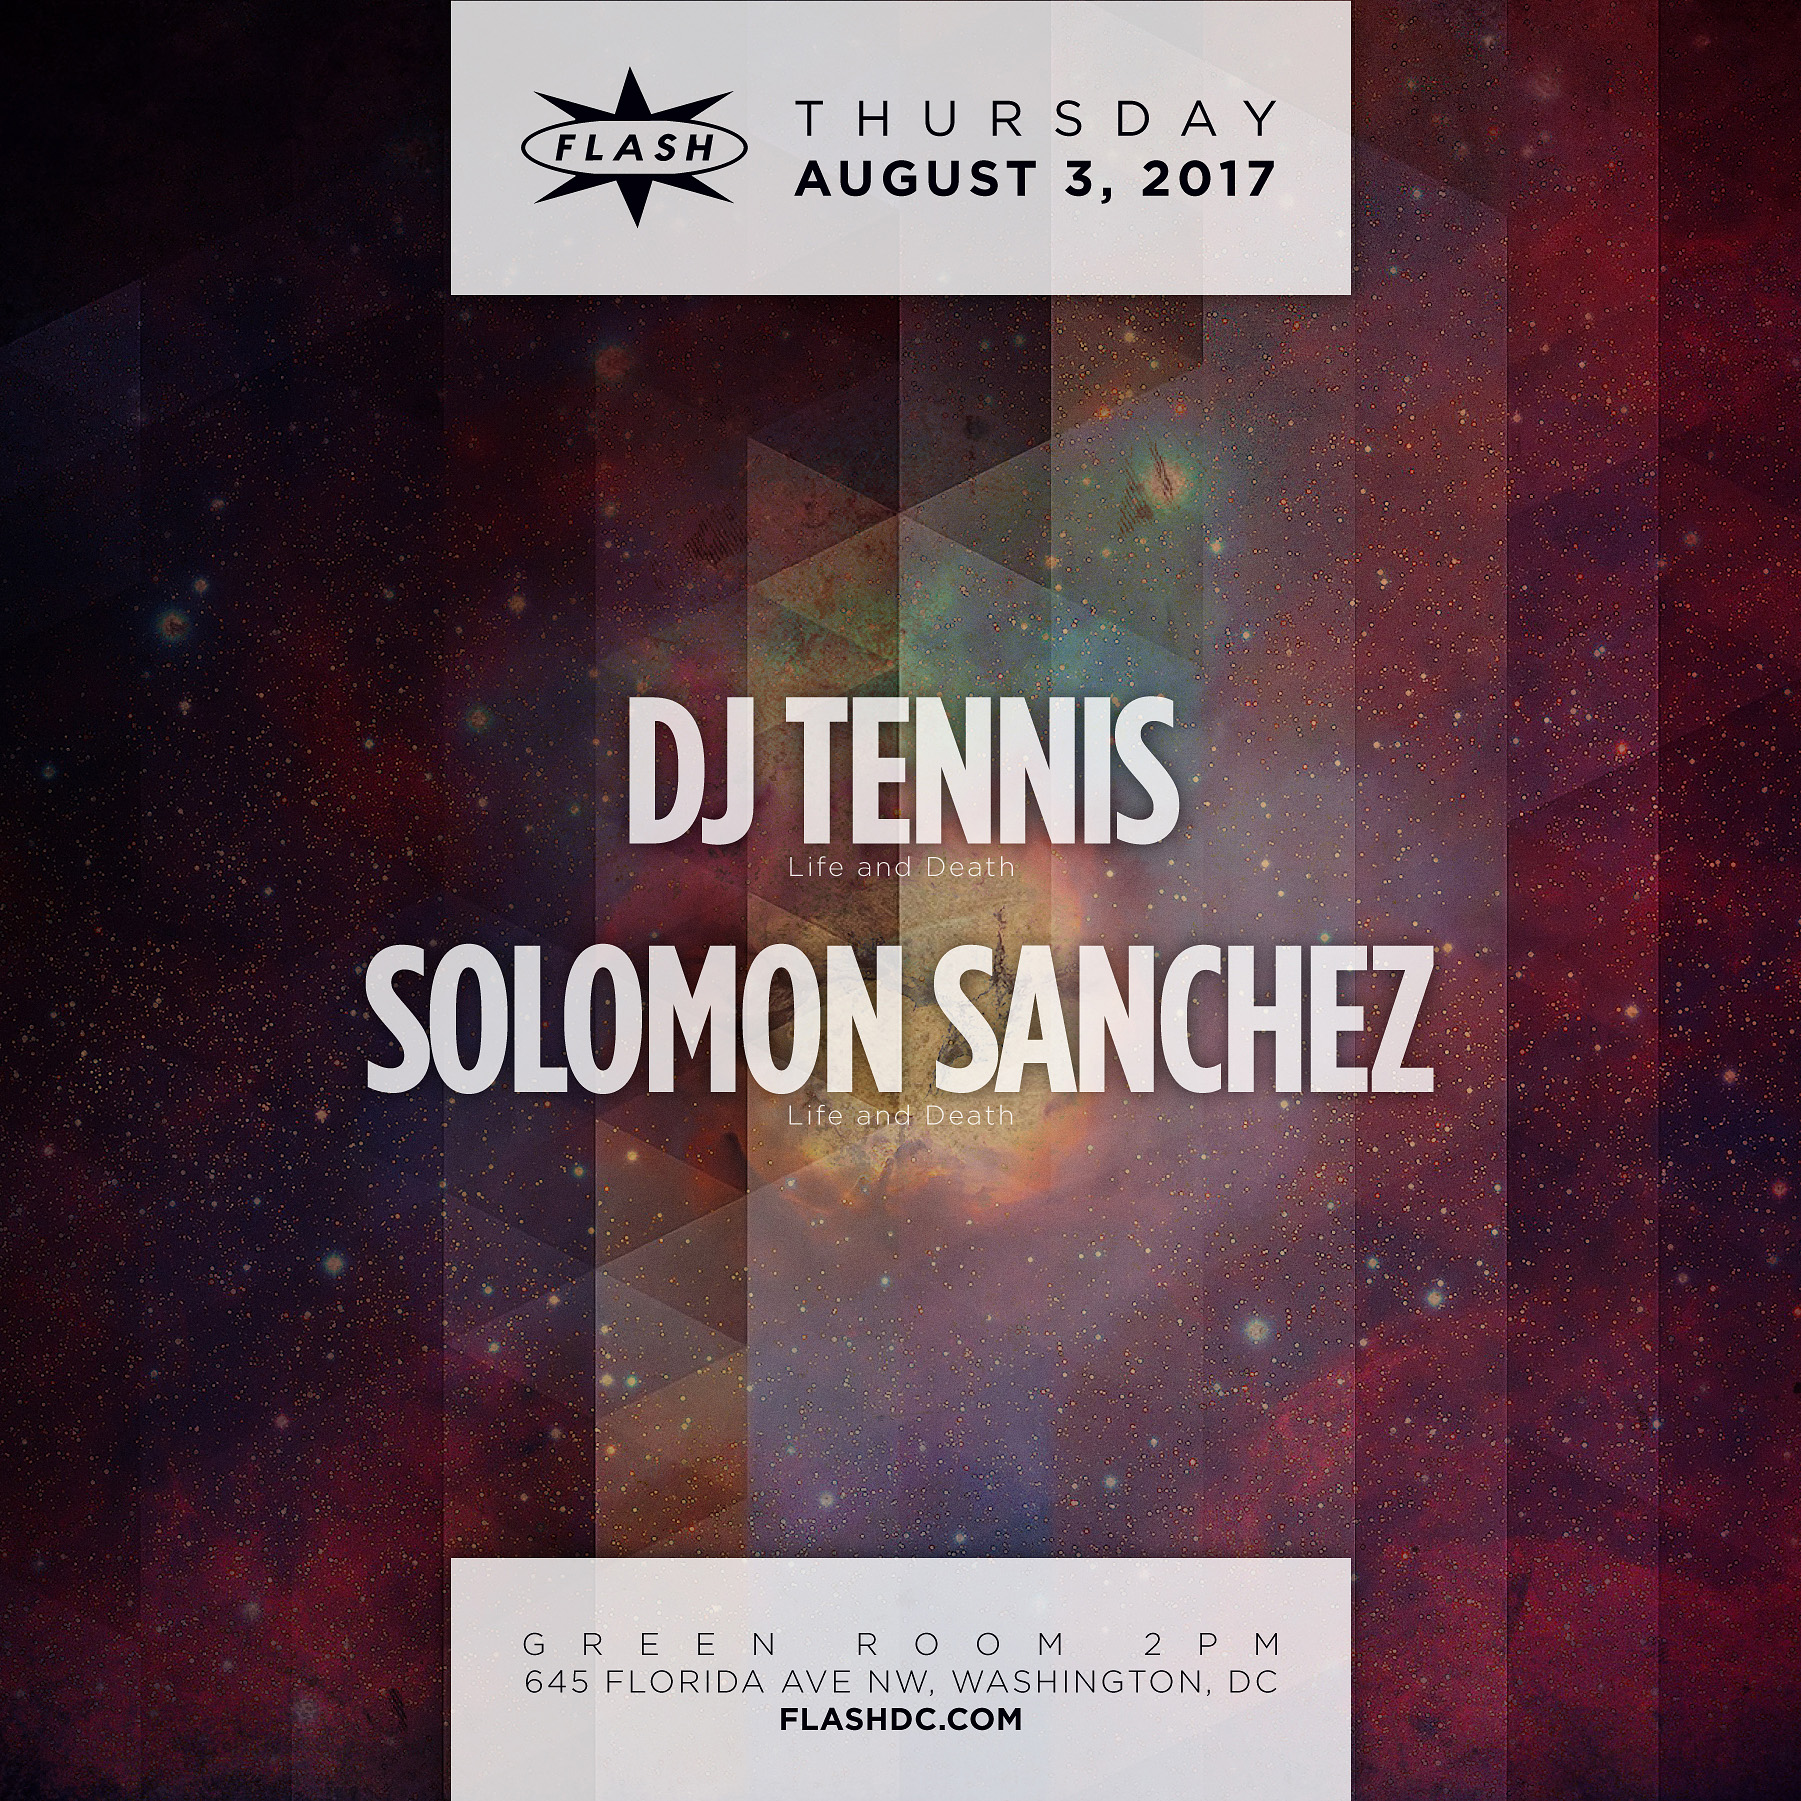 DJ Tennis - Solomon Sanchez event thumbnail